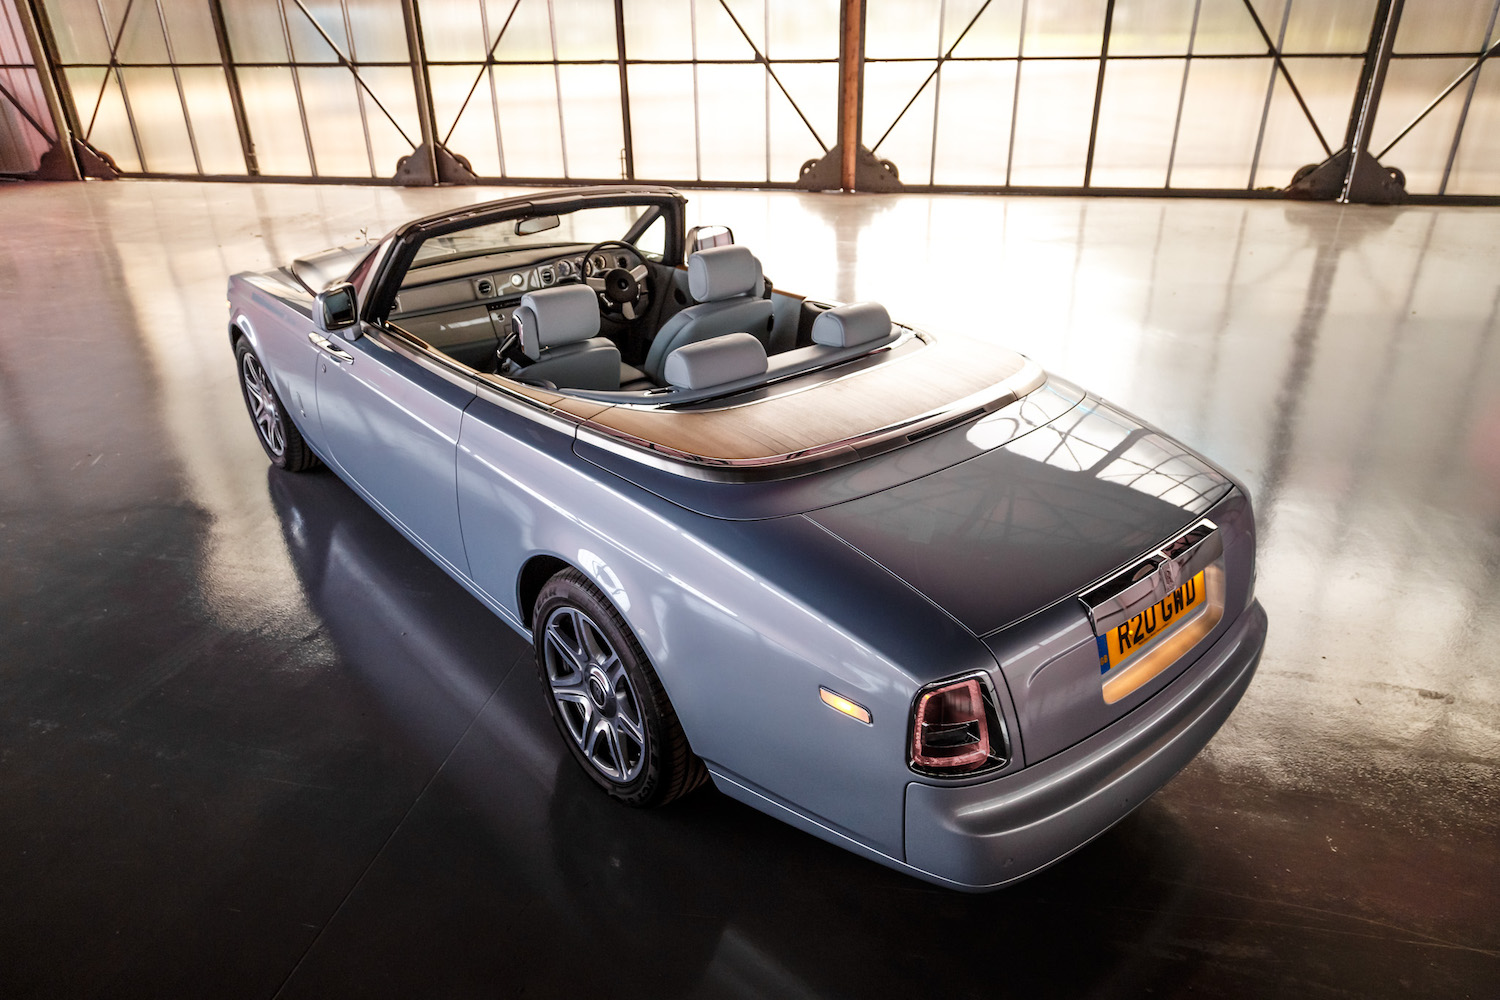 rolls royce phantom drophead coupe 2015 71 motor verso. Black Bedroom Furniture Sets. Home Design Ideas